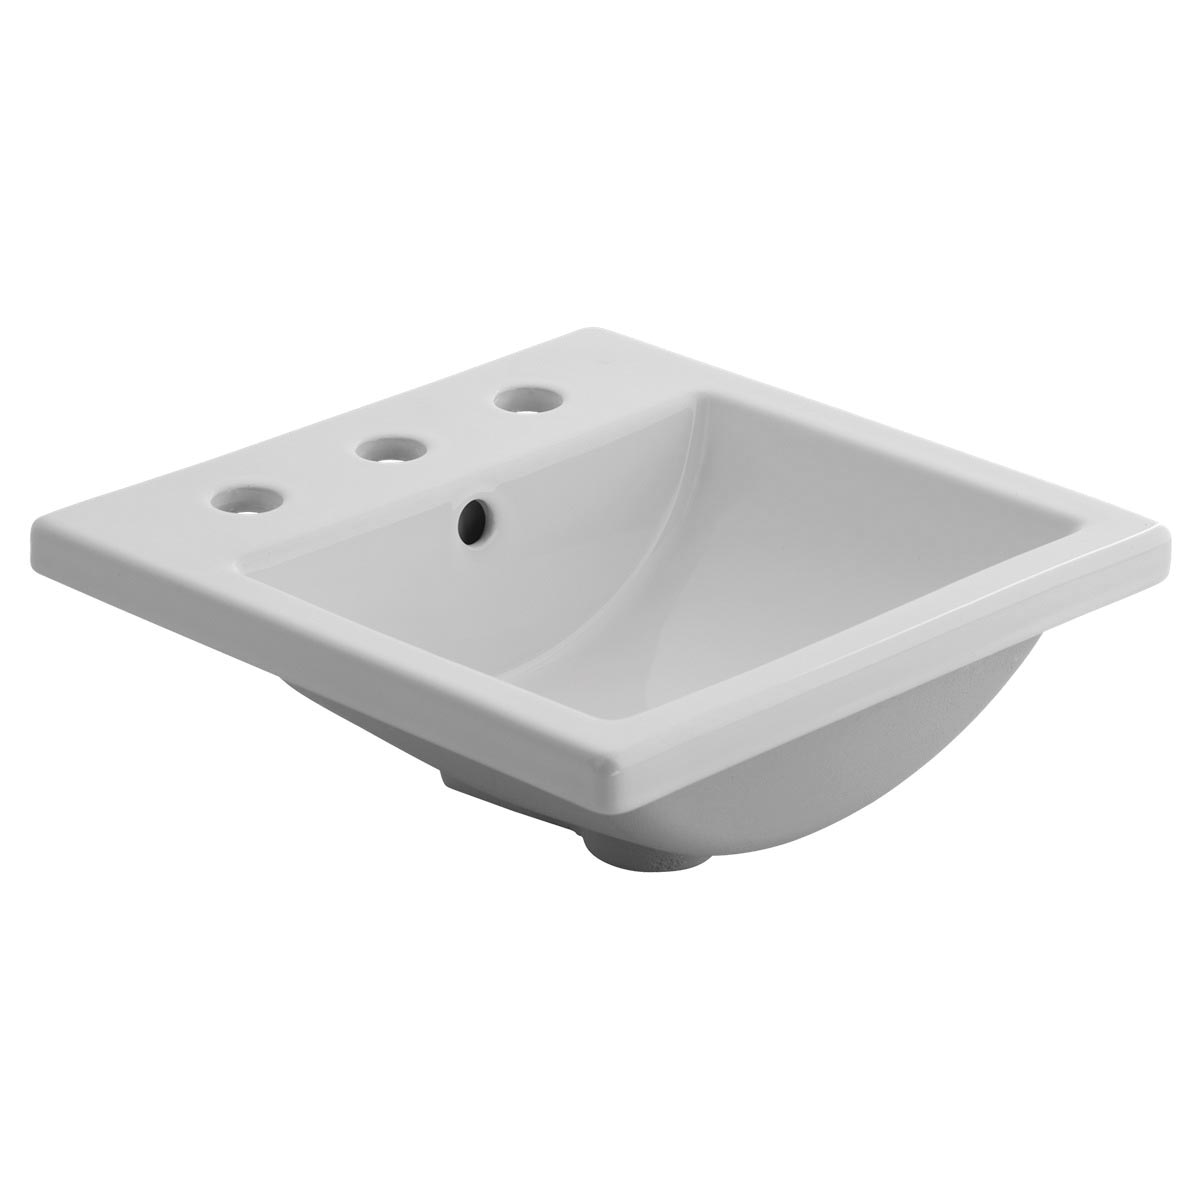 American Standard 0642.001.020 Studio™ Carre Bathroom Sink With Rear Overflow, Rectangular, 16-1/4 in W x 16-1/4 in D x 6-3/4 in H, Countertop Mount, Vitreous China, White, Import